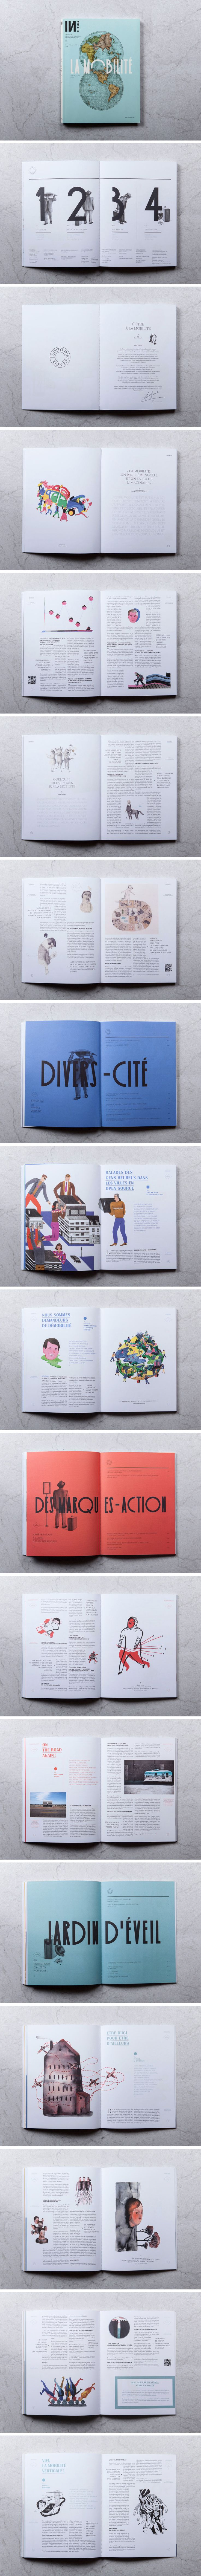 INFLUENCIA N°3 - LA MOBILITÉ #editorial #design #graphic #graphism